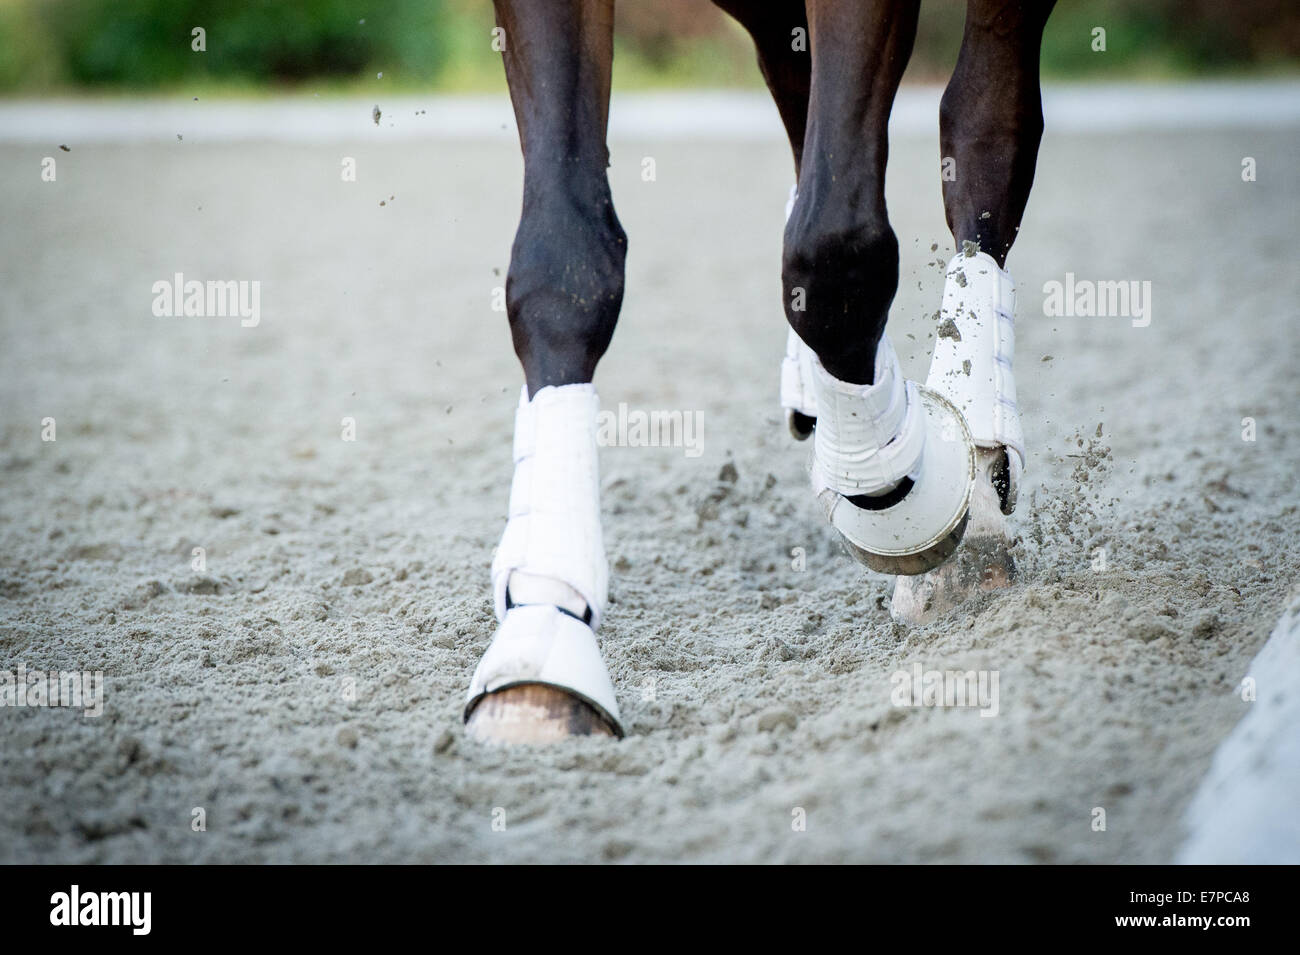 Closeup of the hooves from a horse while in trot on an outside track - Stock Image